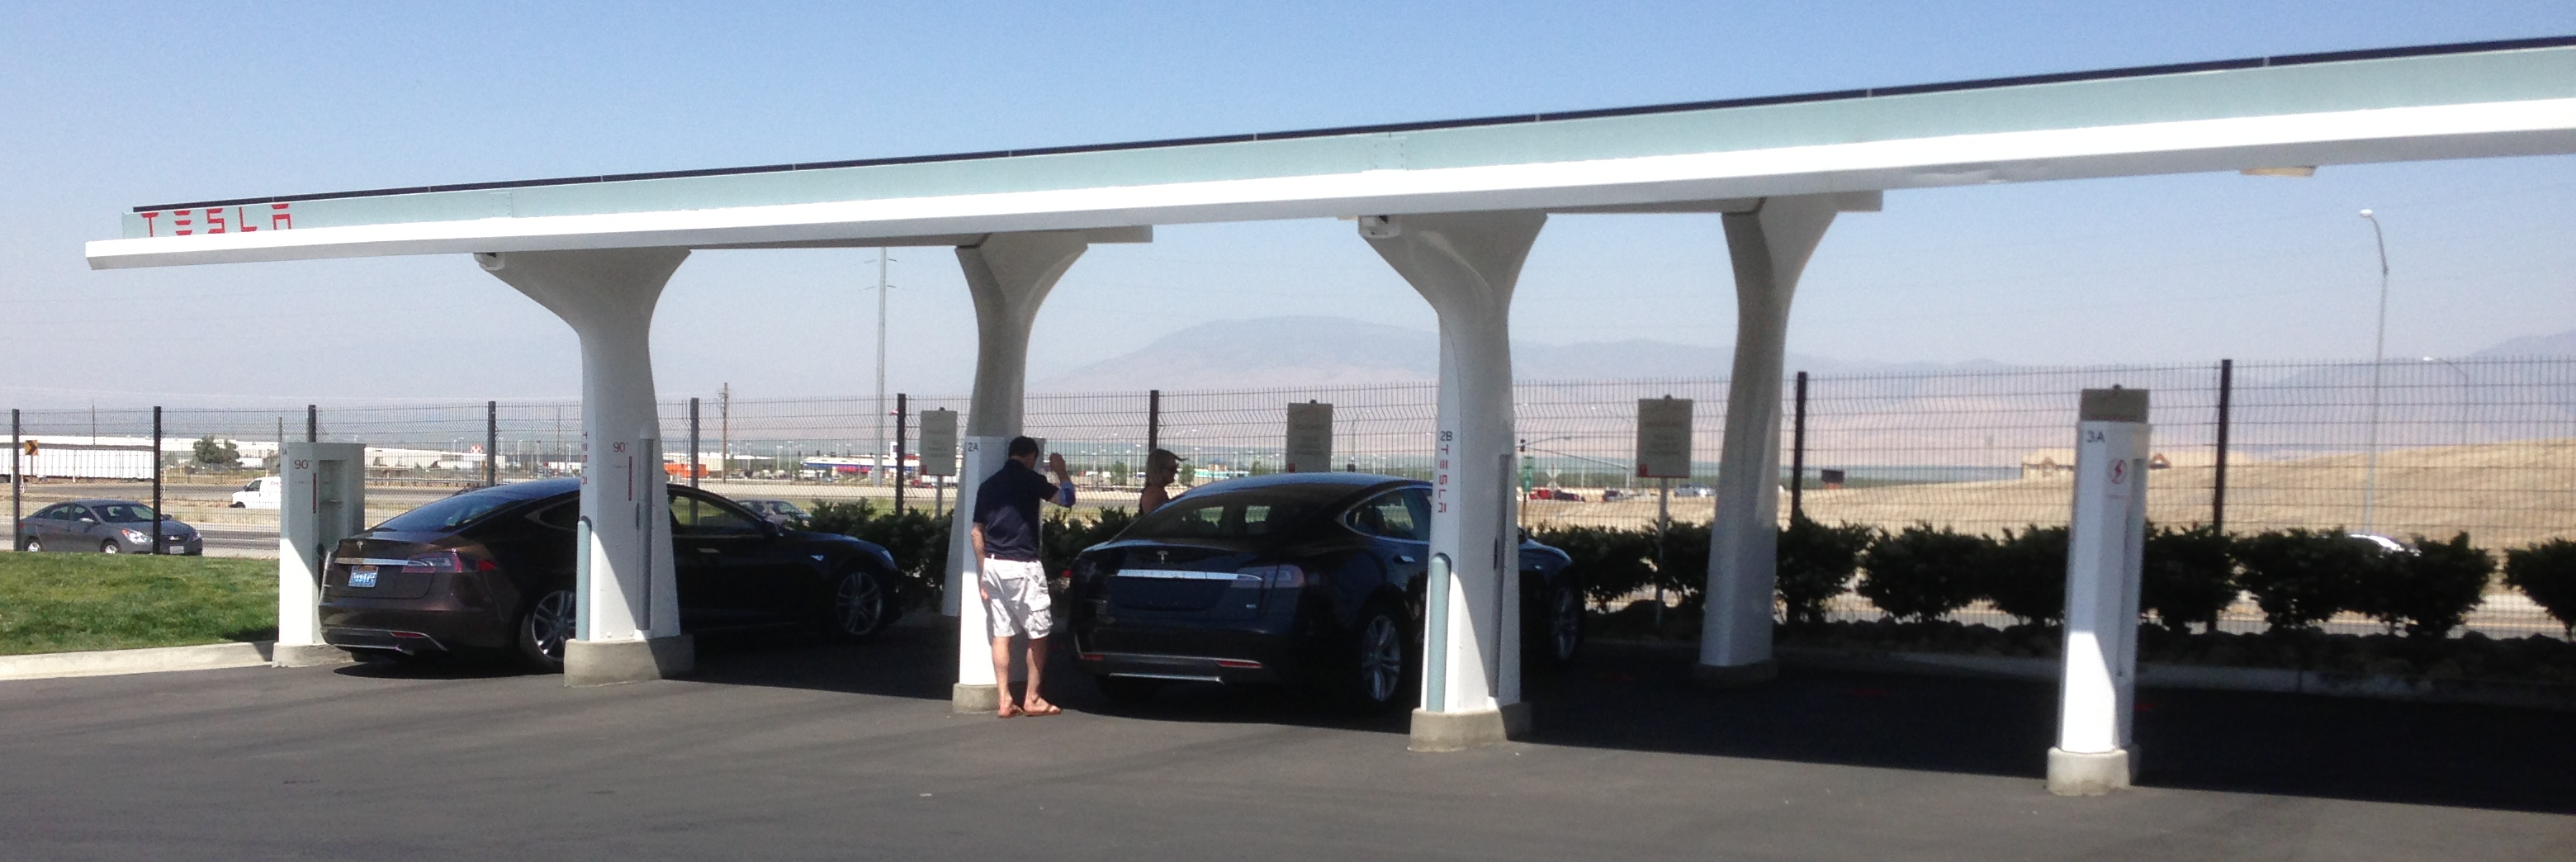 Tesla charging station with a rooftop solar collector. This station is located in Tejon Ranch, California. Photo:Wikimedia Common